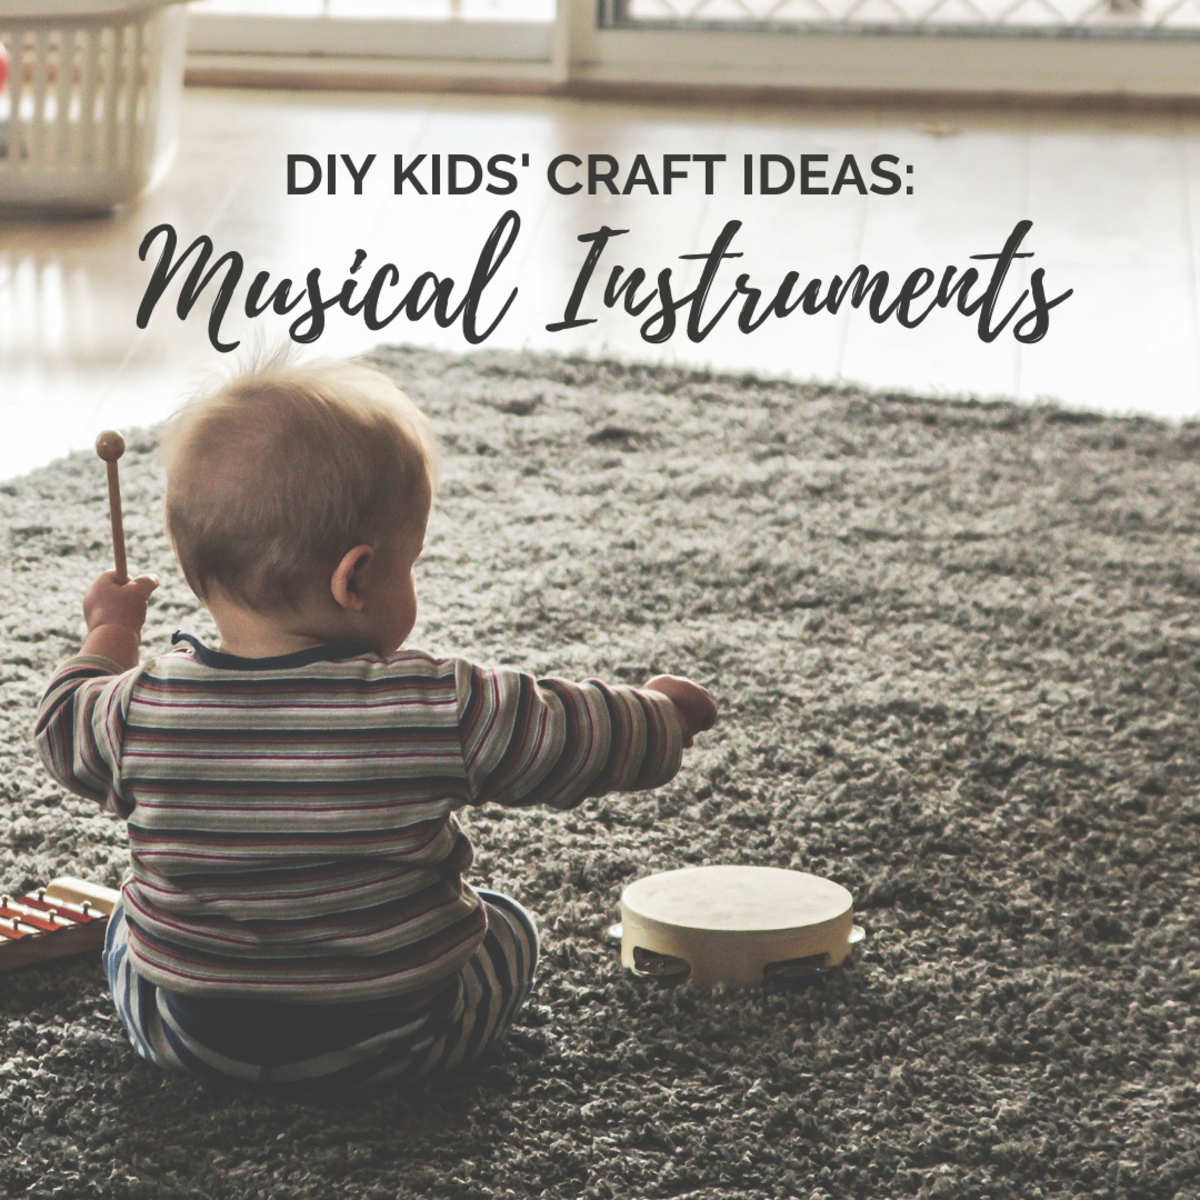 52 improvised musical instruments to make with kids